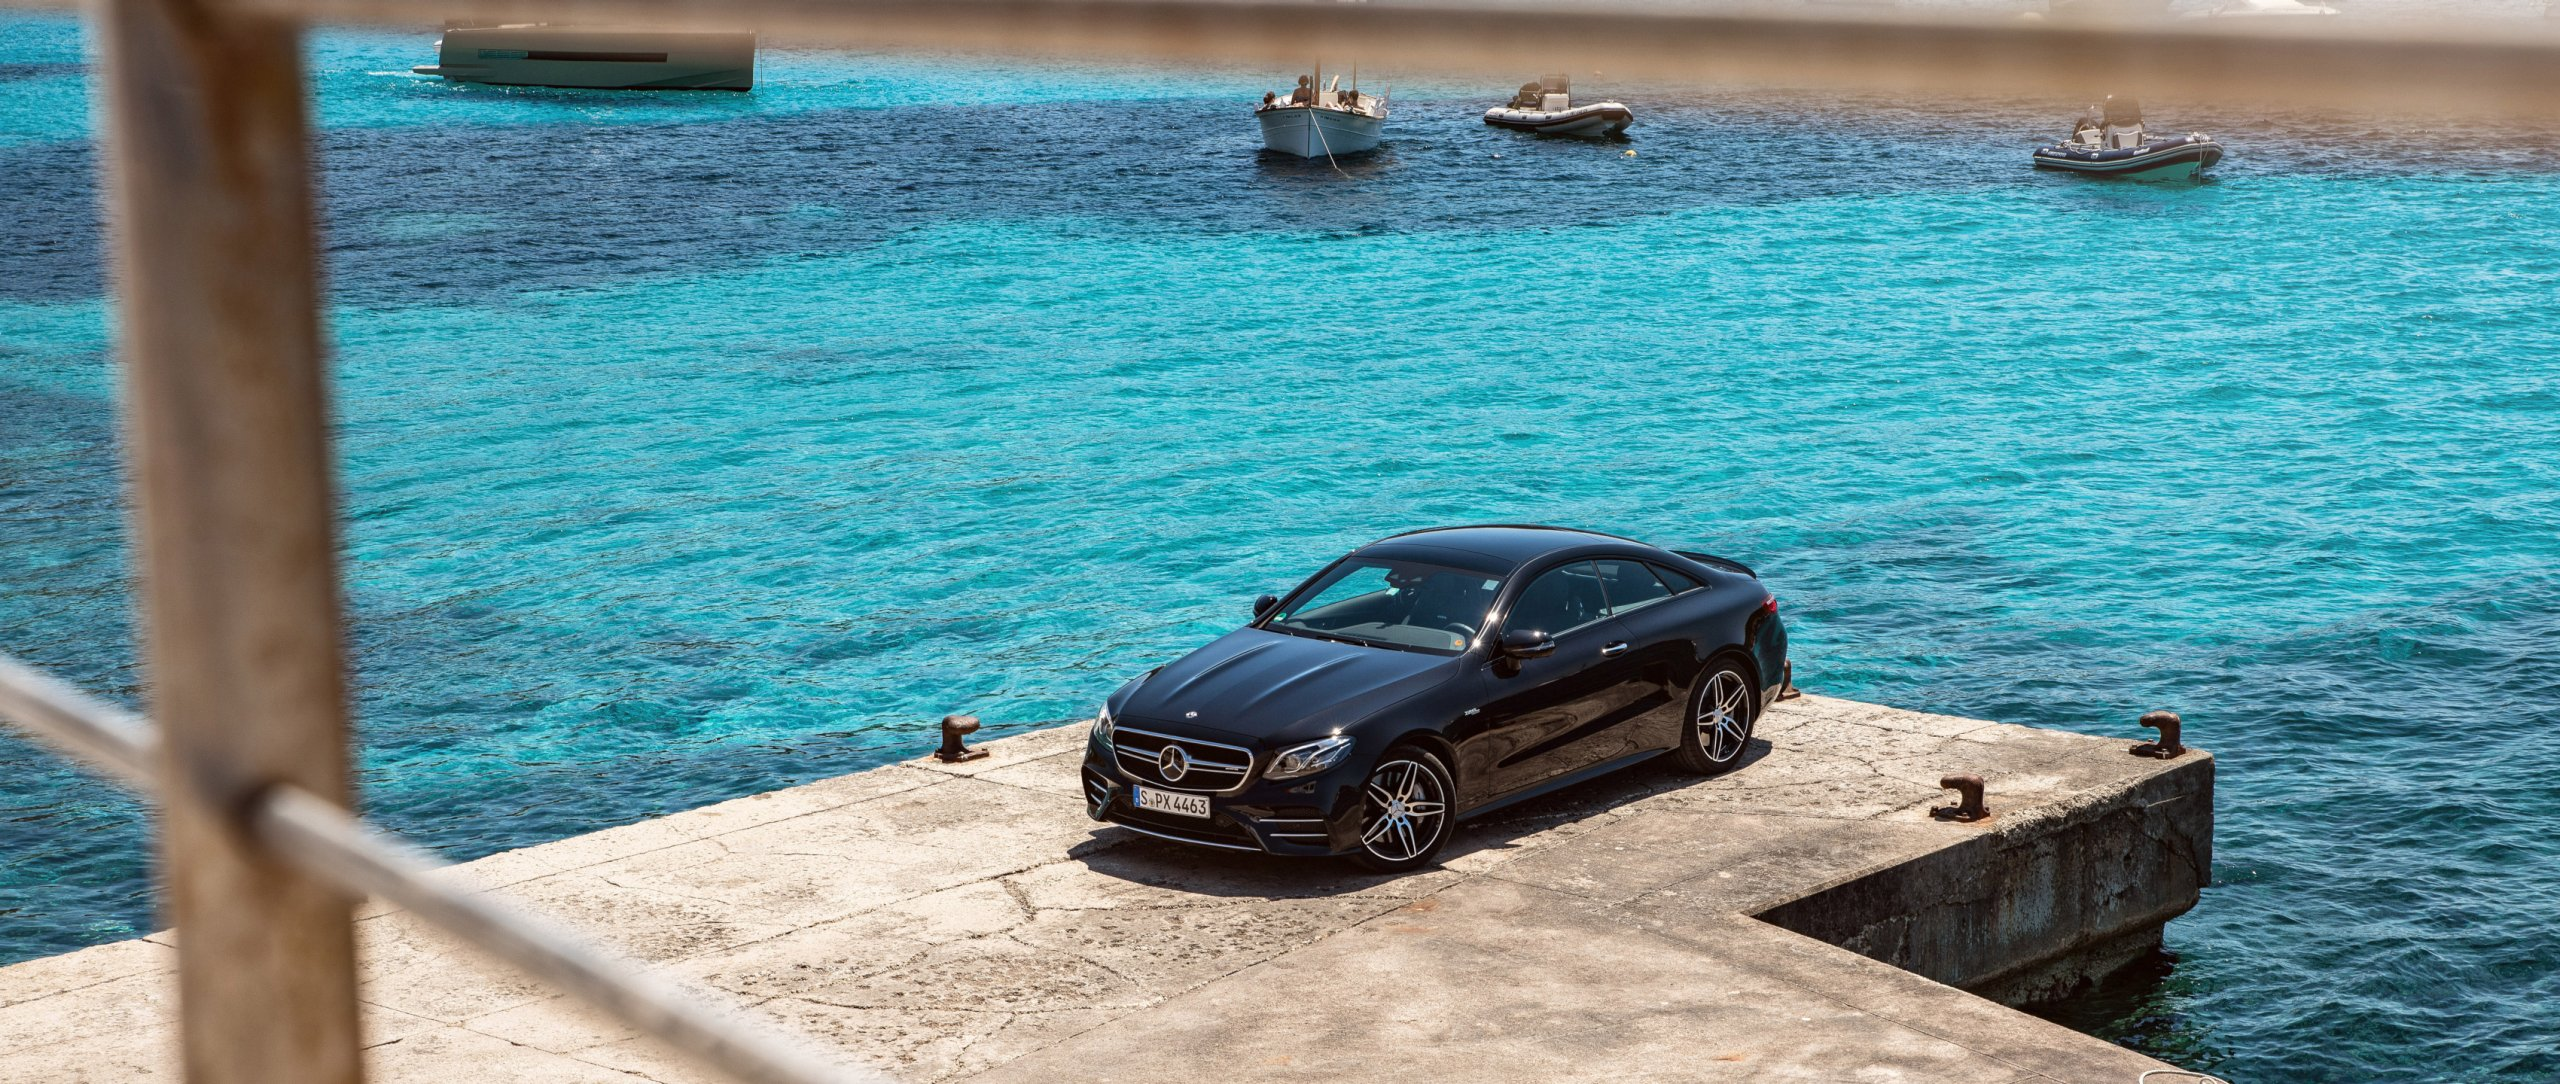 The Mercedes-AMG E 53 4MATIC+ Coupé (C 238) in black at a harbour with ships in the background.